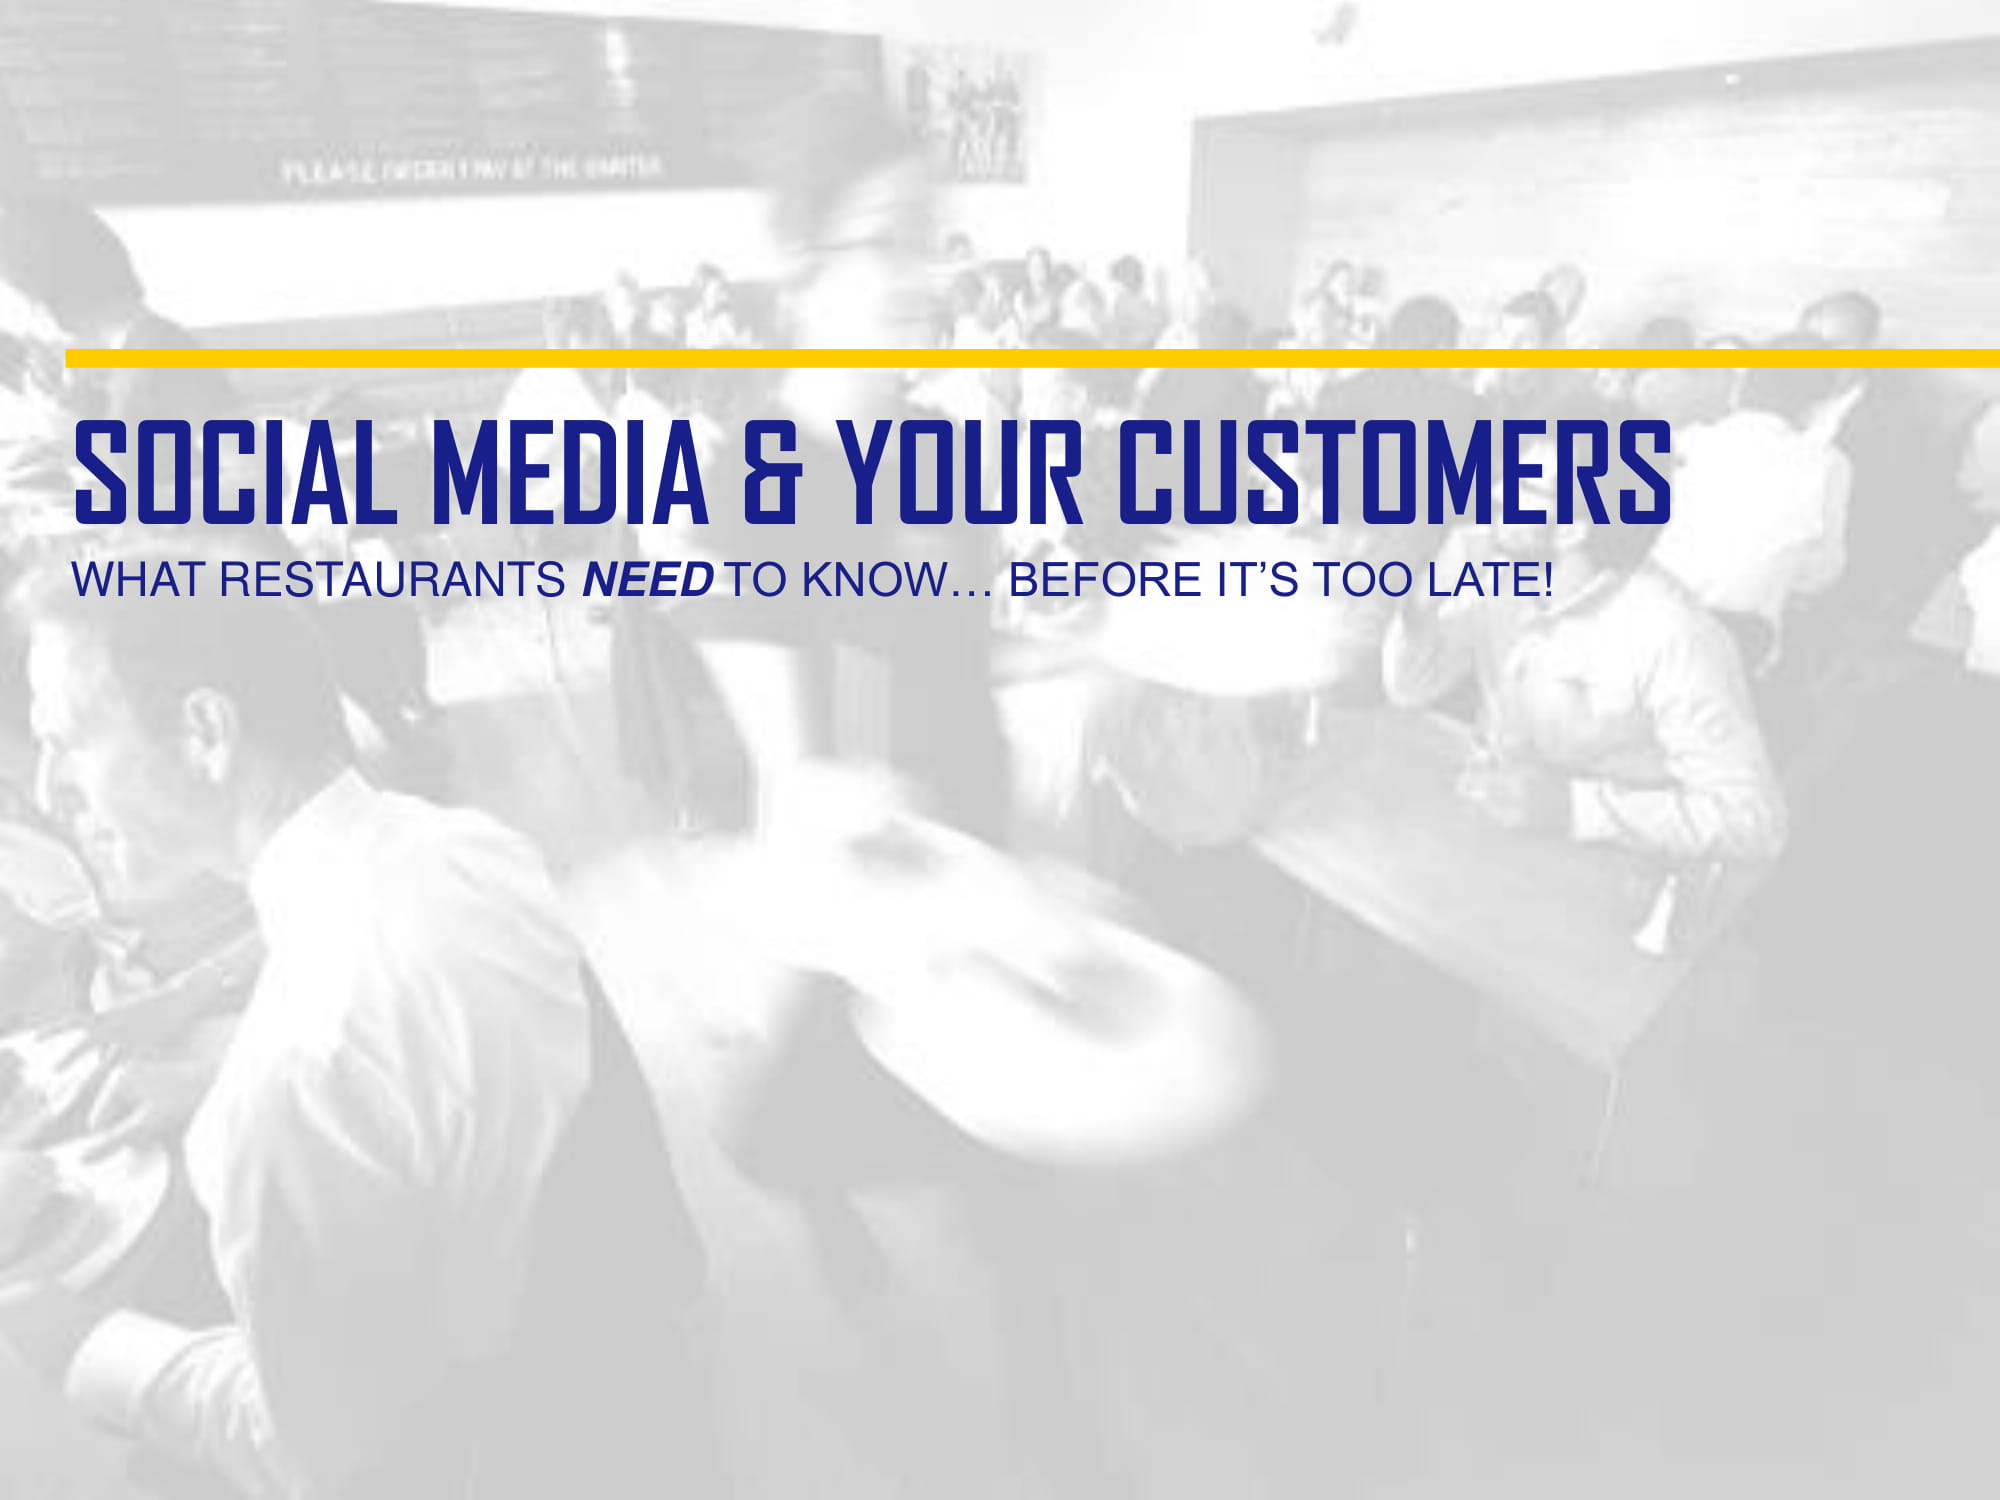 restaurant social media marketing proposal guide example 01